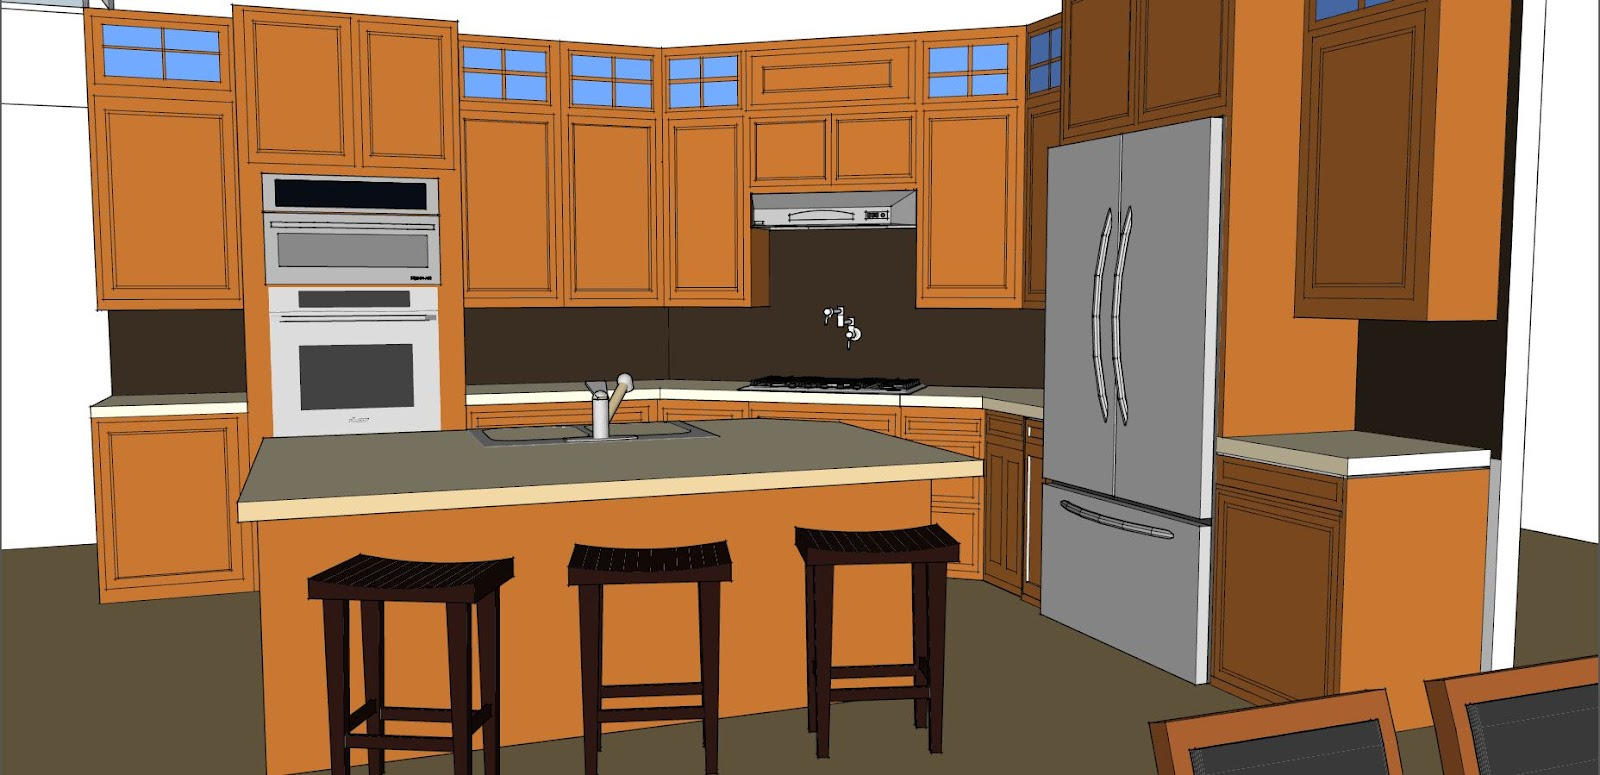 kitchen design software google sketchup beth c davis 479